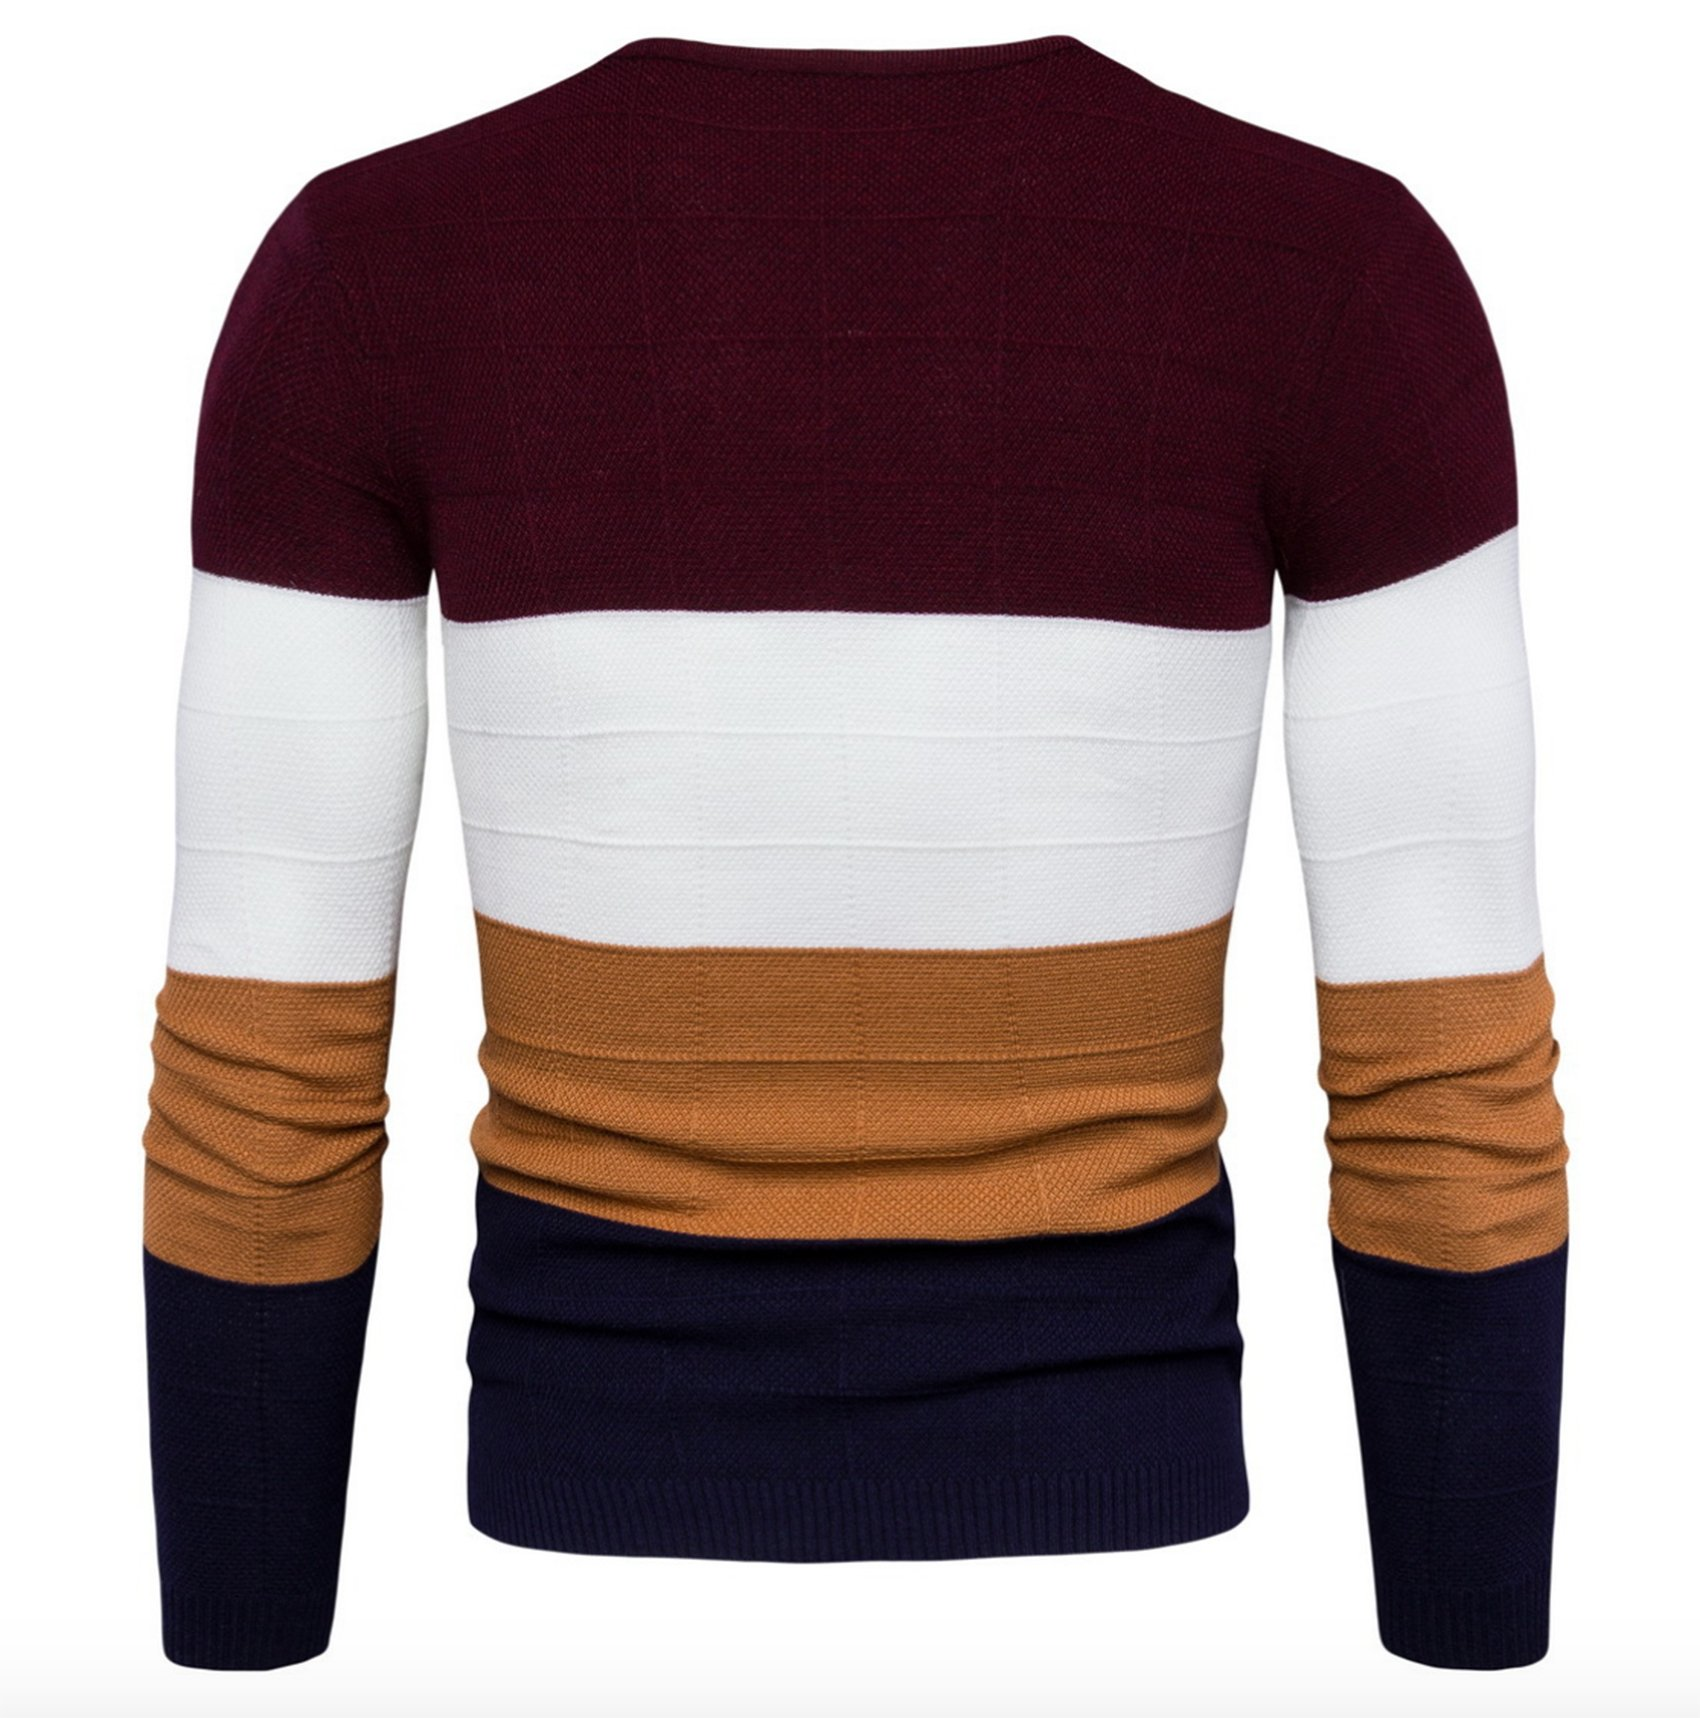 WSLCN Mens Chic Fine Knit V-Neck Coton Jumper Pullover Contrast Color Sweater Red US S (Asian L) by WSLCN (Image #3)